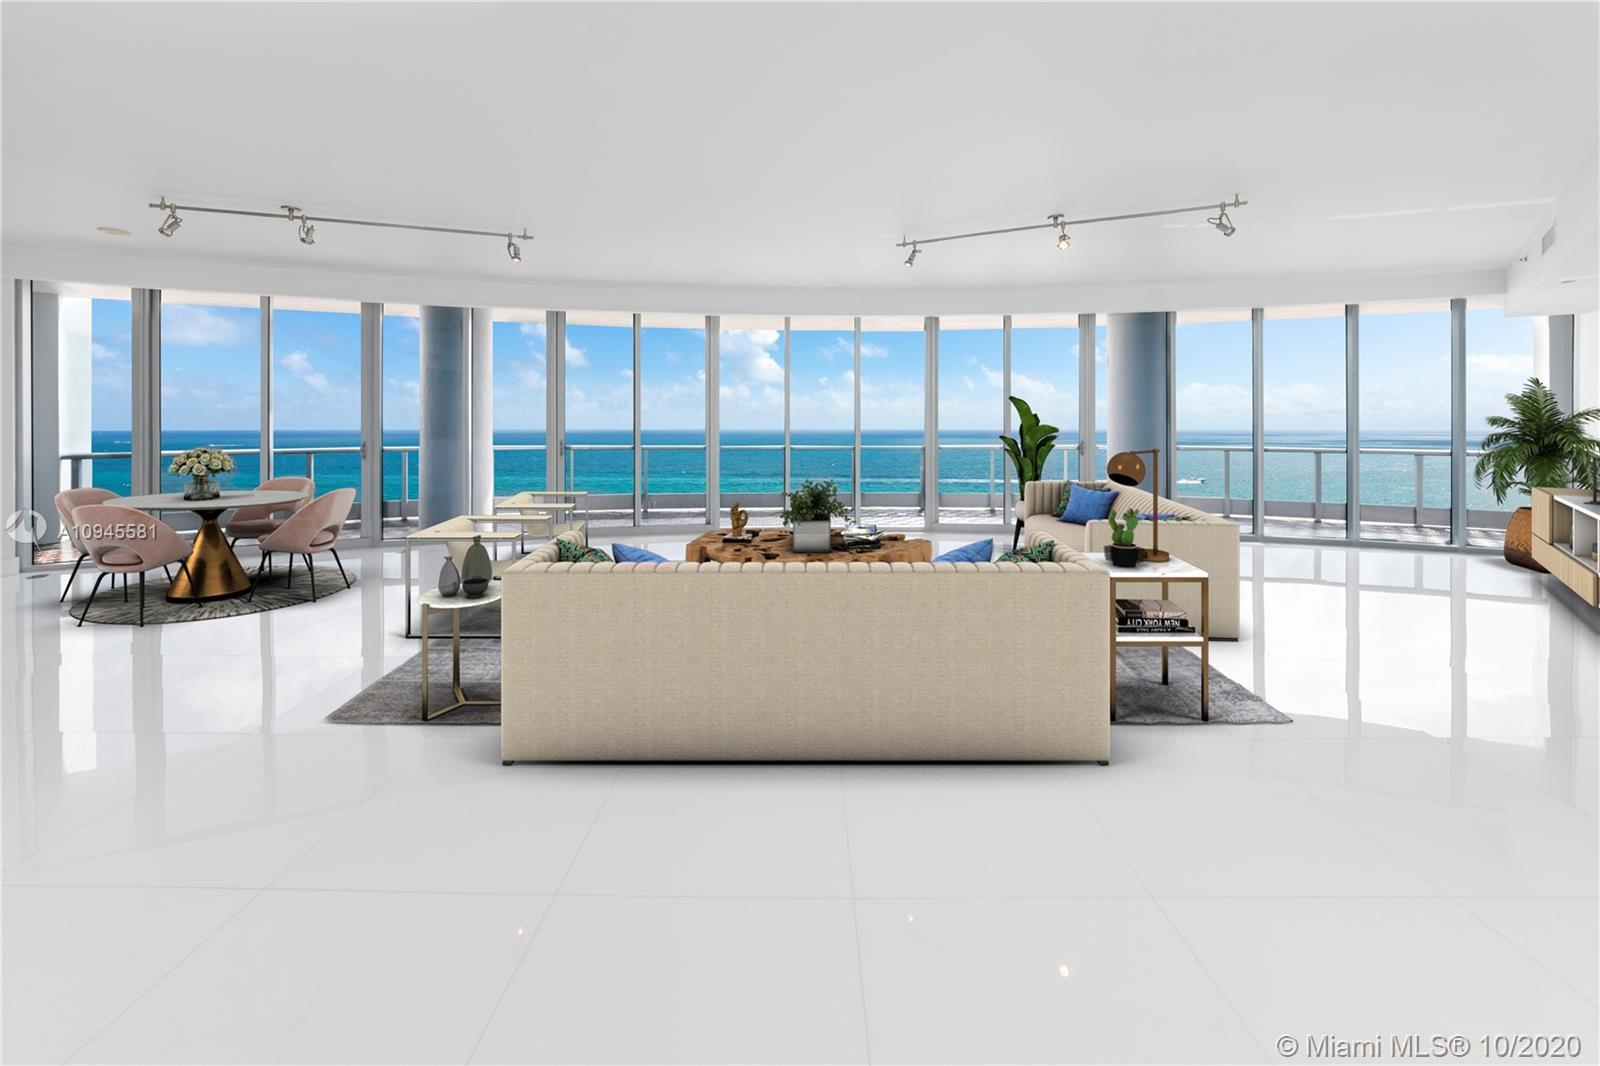 Welcome to one of the most breathtaking panoramic ocean views from this residence located at the dis